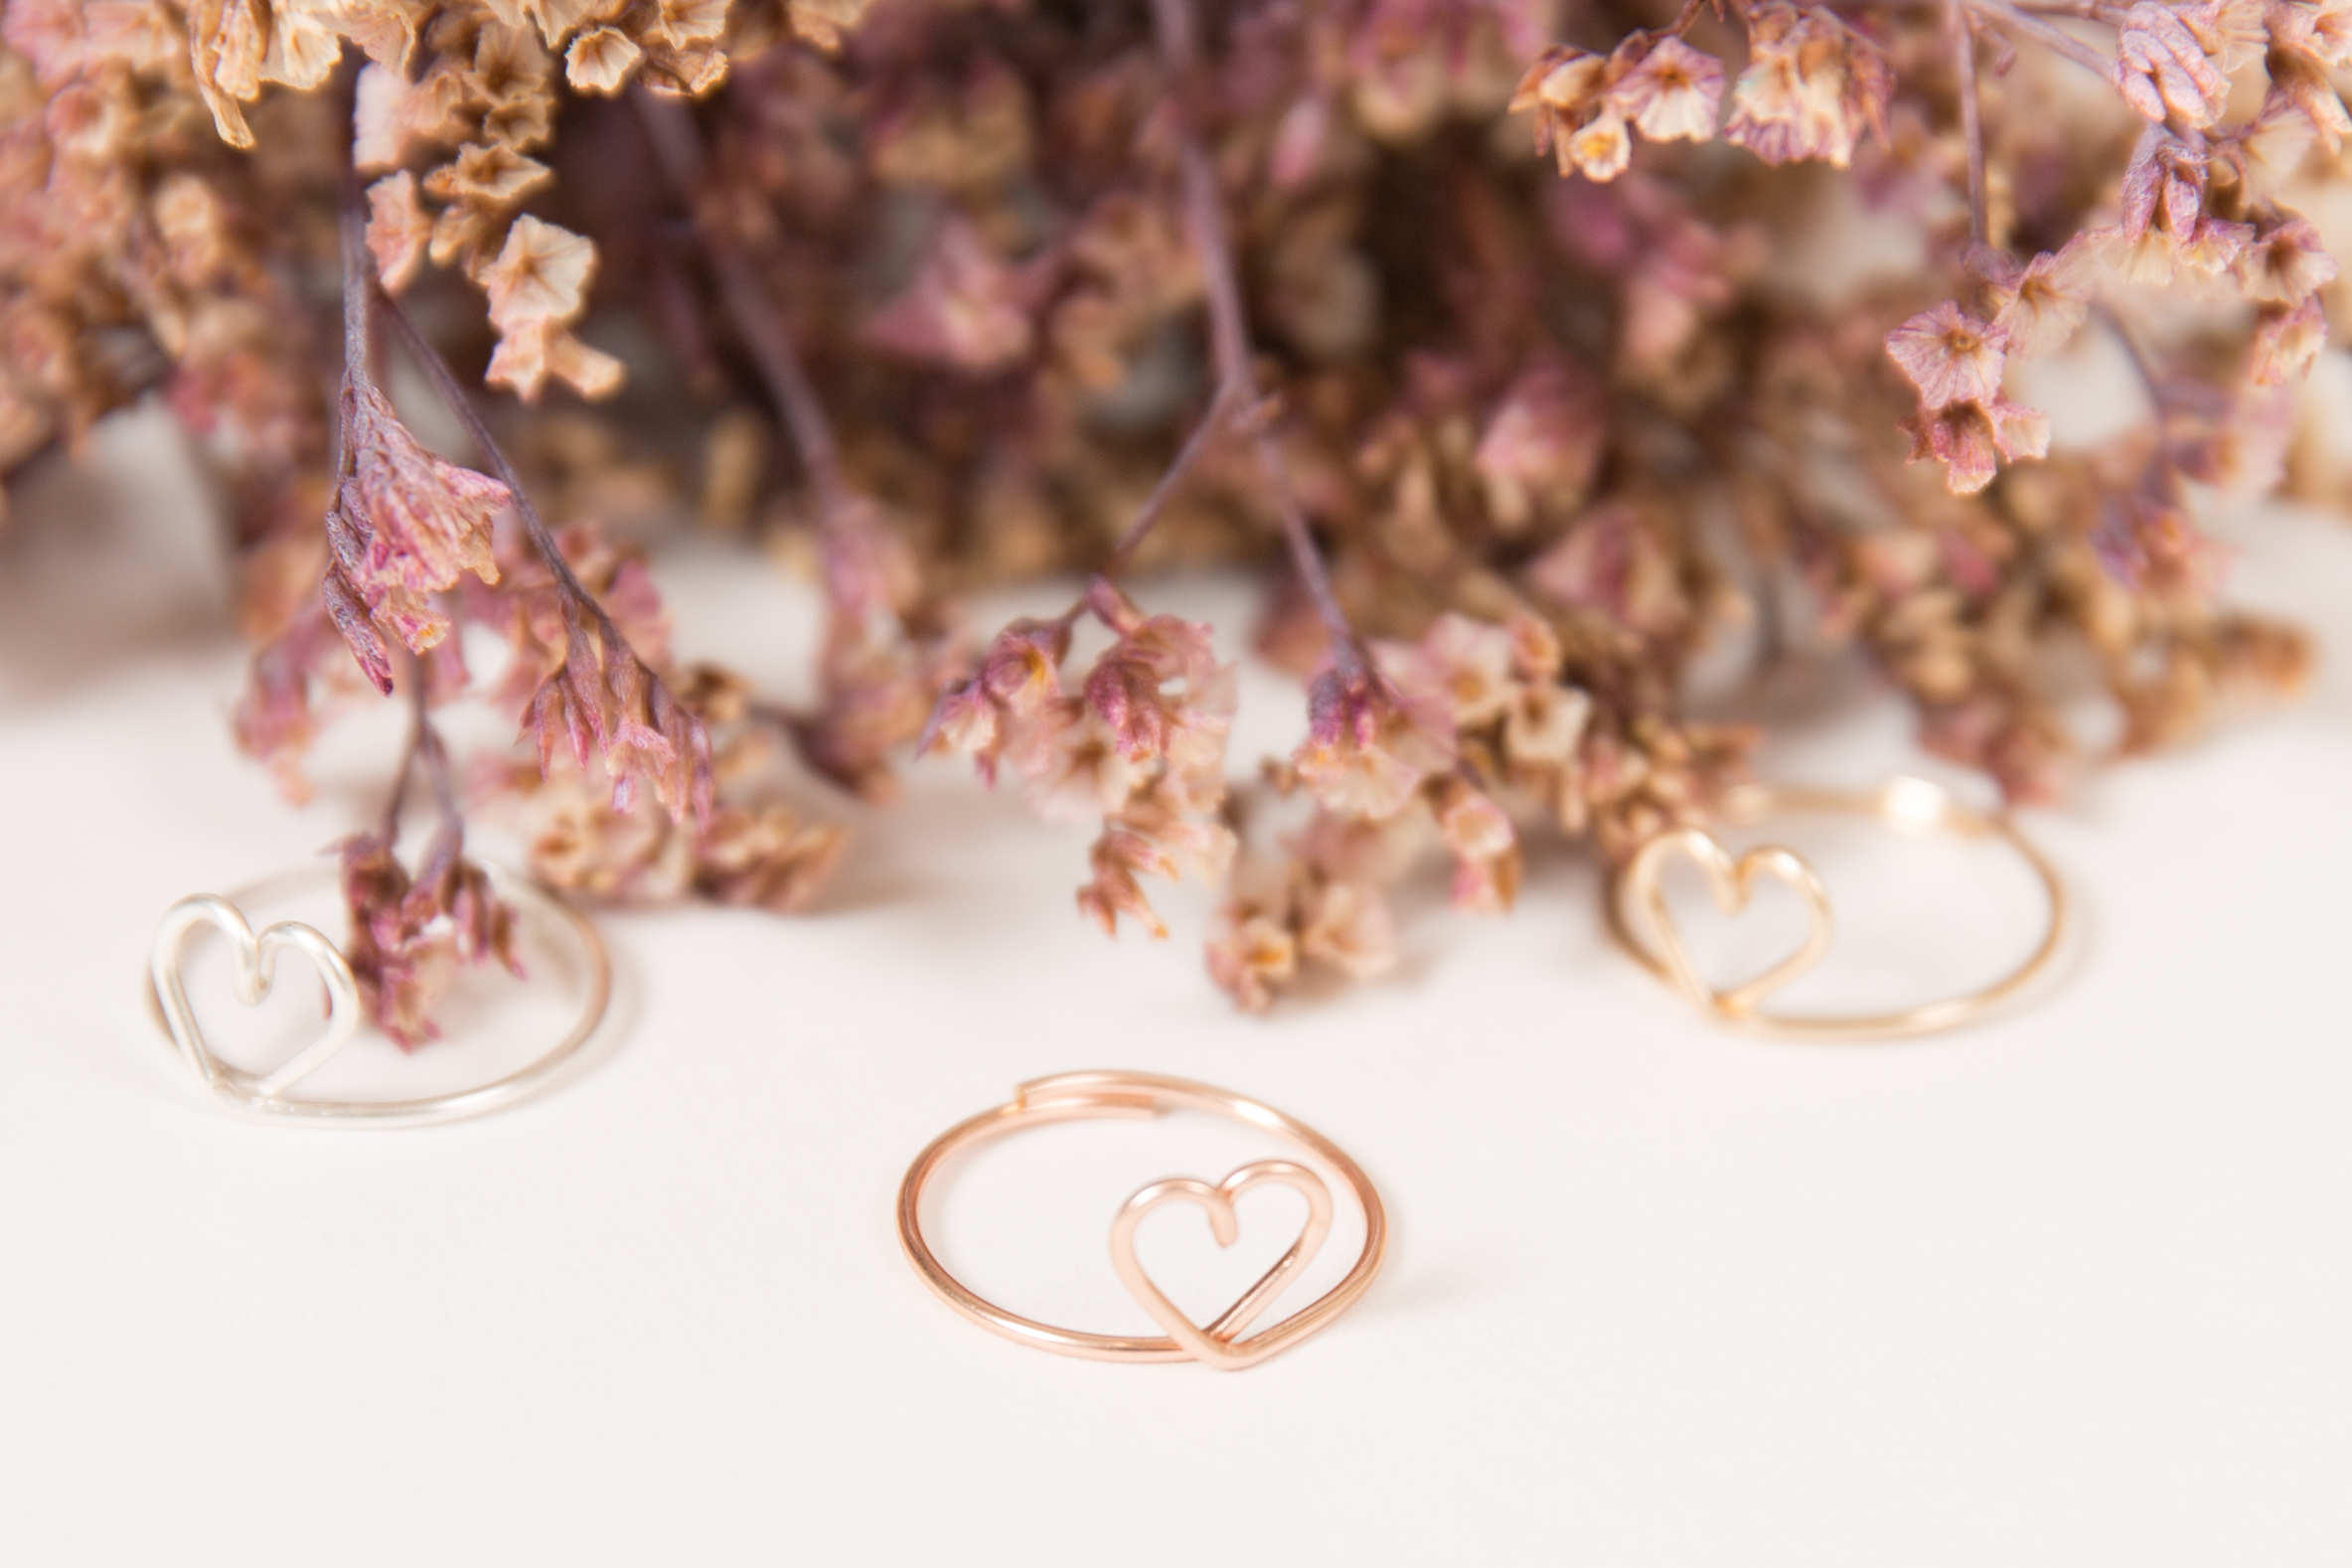 heart-rings-best-valentines-day-gifts-to-offer-her-in-2020-studio-emoi